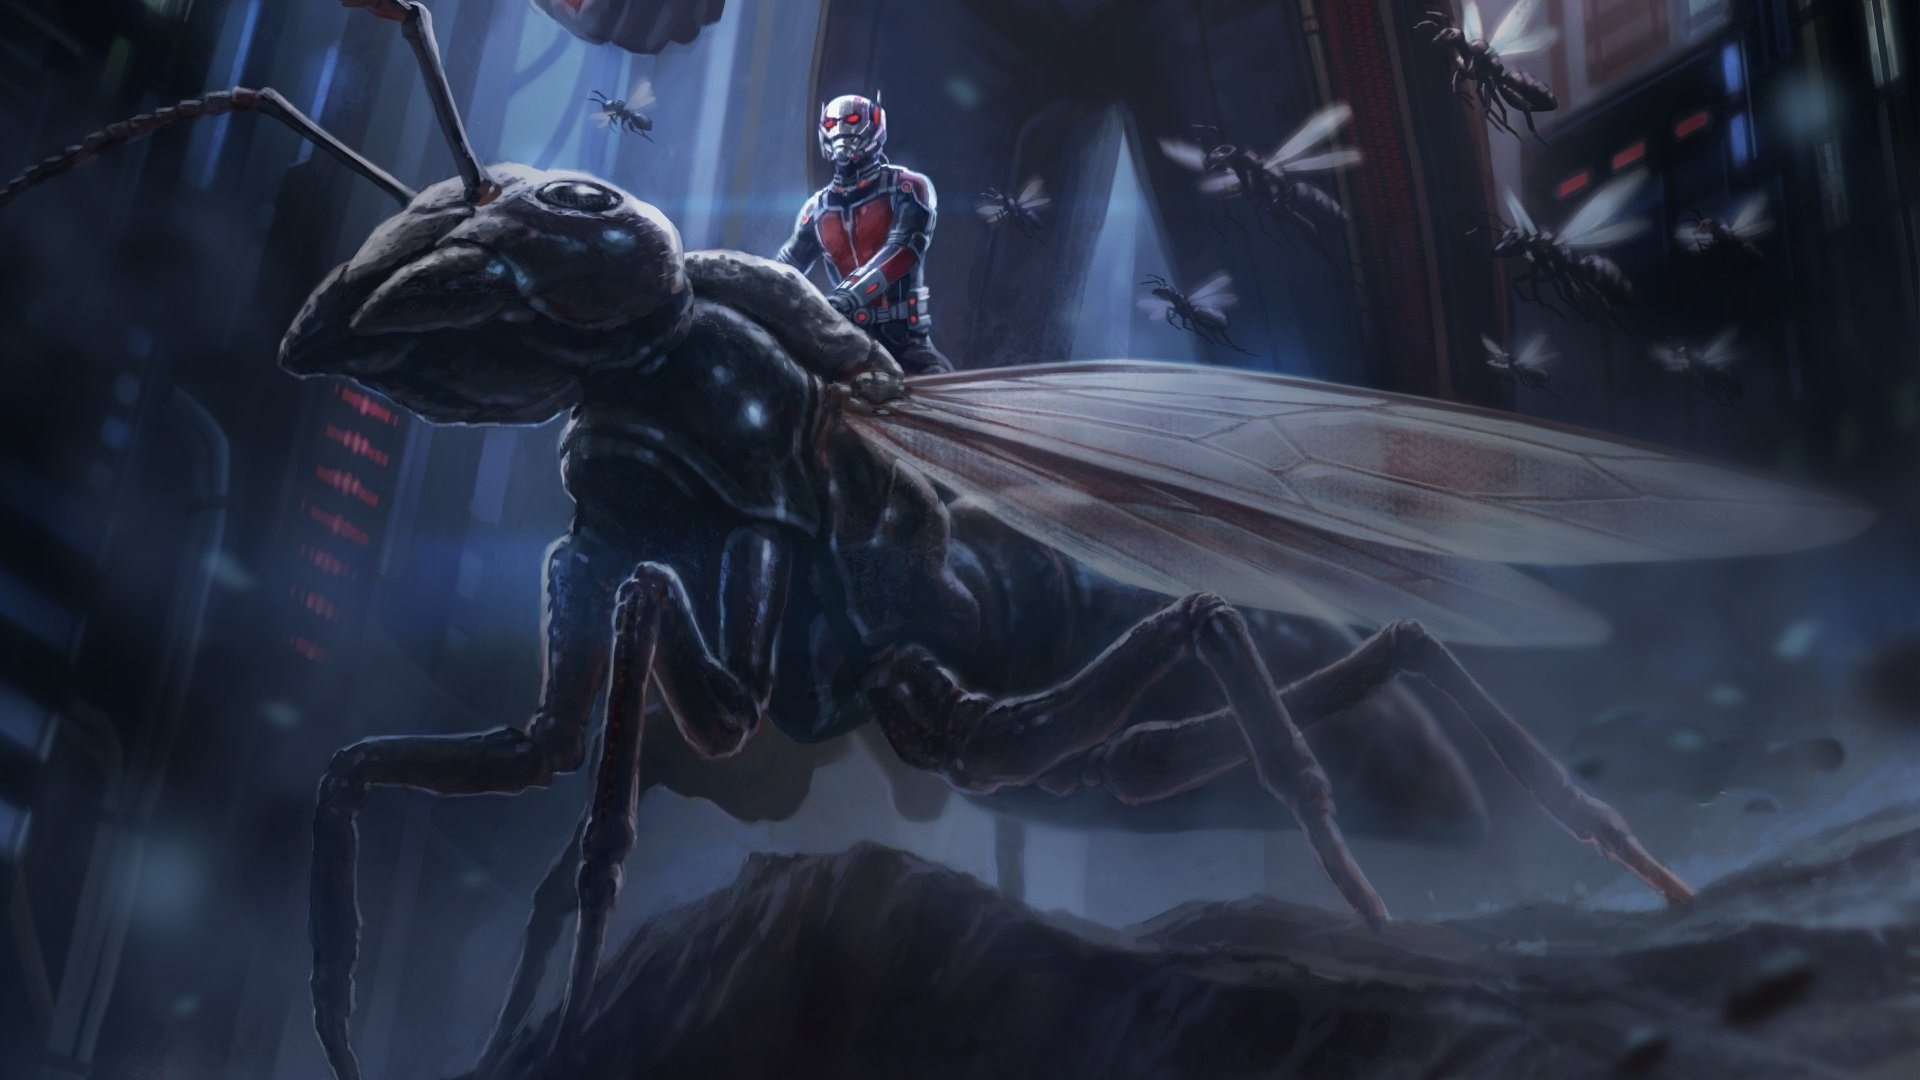 Ant Man Background 1920x1080 1920x1080